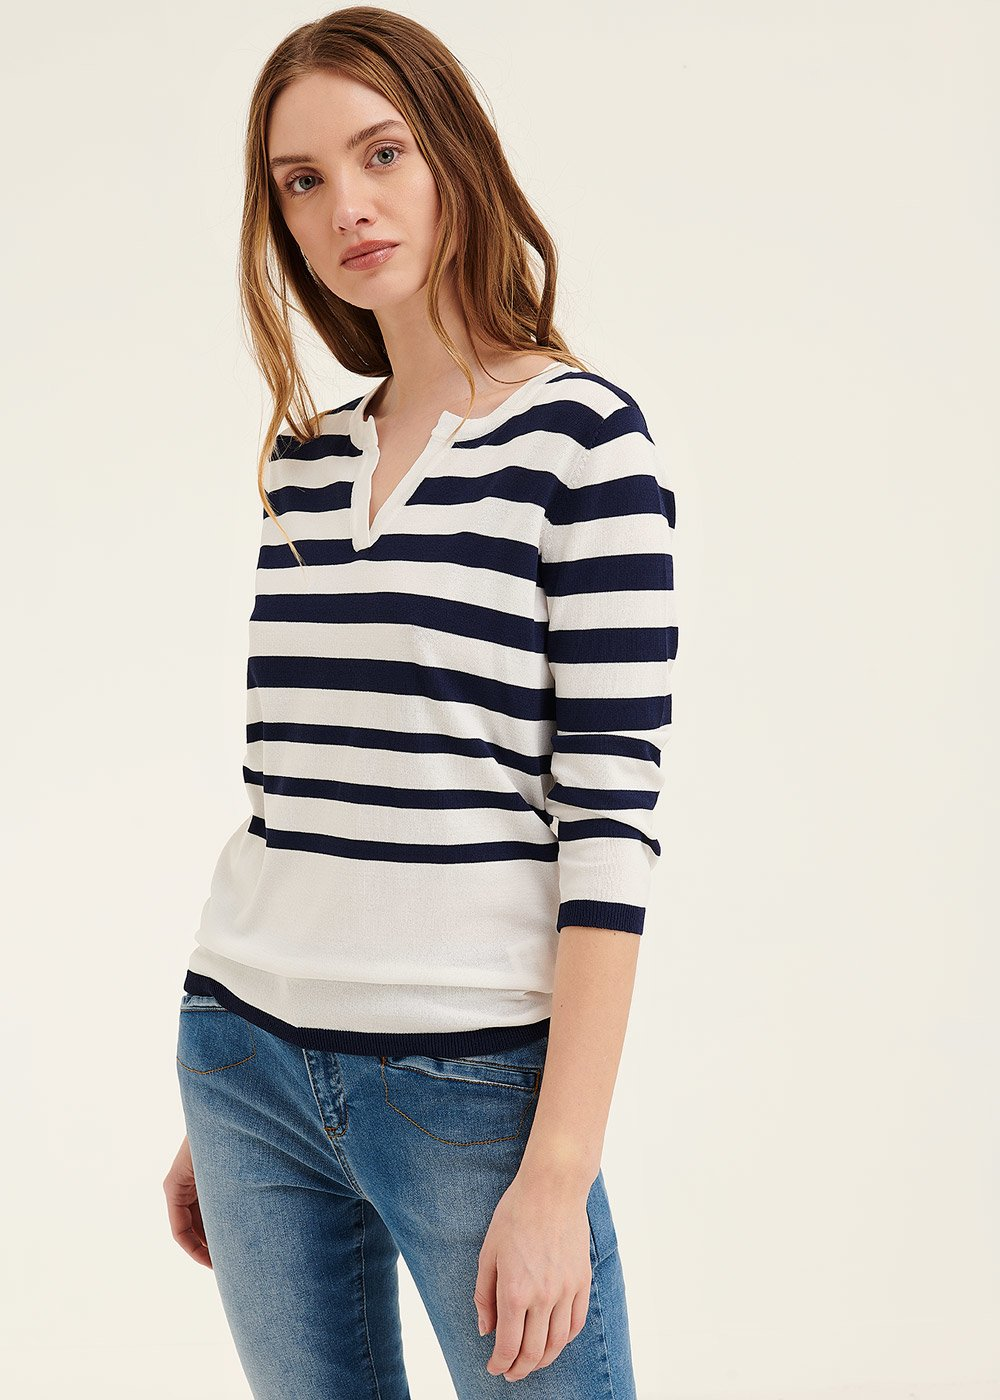 Morgan t-shirt with keyhole neckline - White\ Oltremare Stripes - Woman